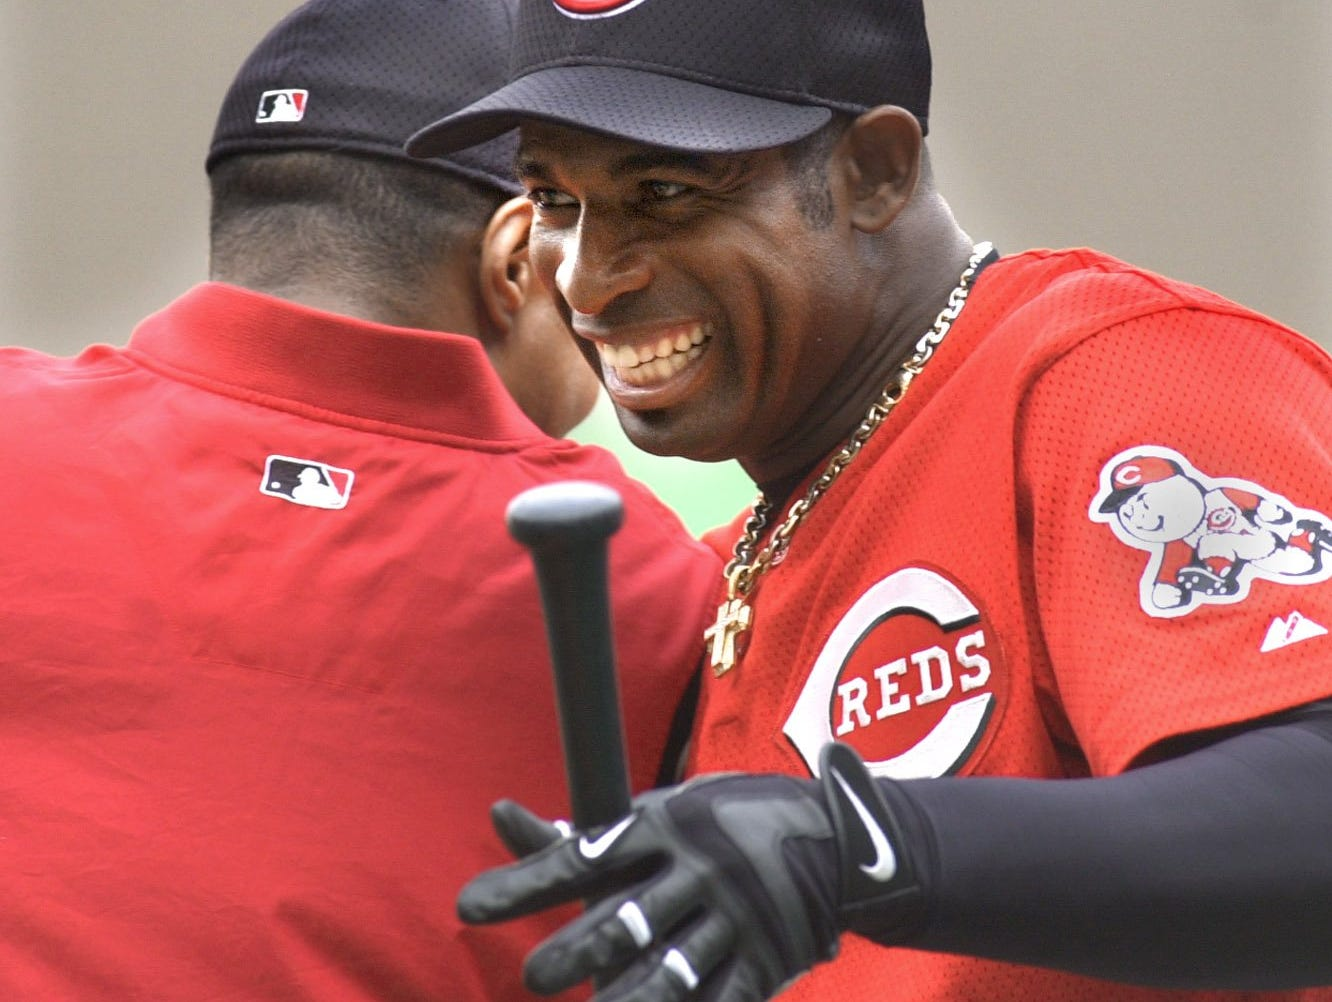 Text: 2001.0501.10.1--DEION RETURNS--Deion Sanders goofs around with Barry Larkin at Cinergy Field Tuesday May 2, in the afternoon during batting practice. Sanders returned to the Reds and the majors after several seasons and other careers. Photo by Craig Ruttle/Cincinnati Enquirer